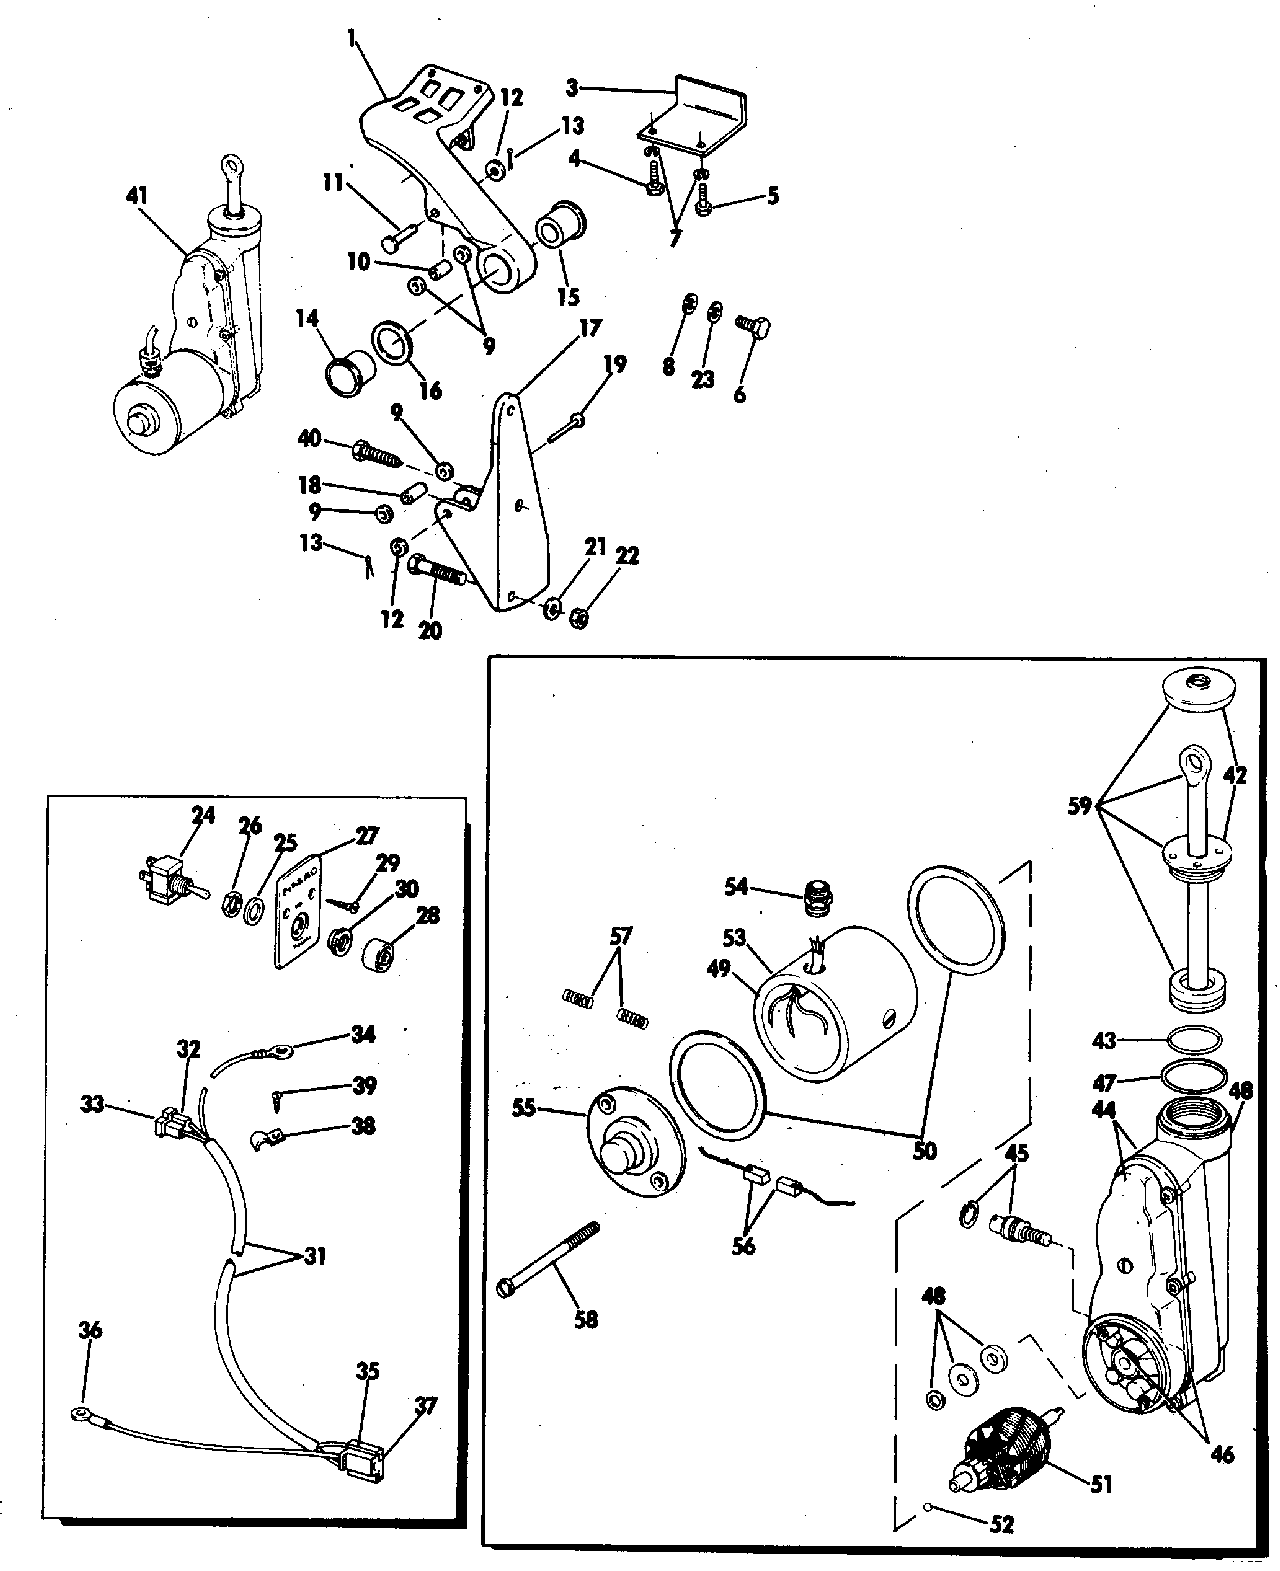 Wrg 65 Hp Evinrude Wiring Diagram